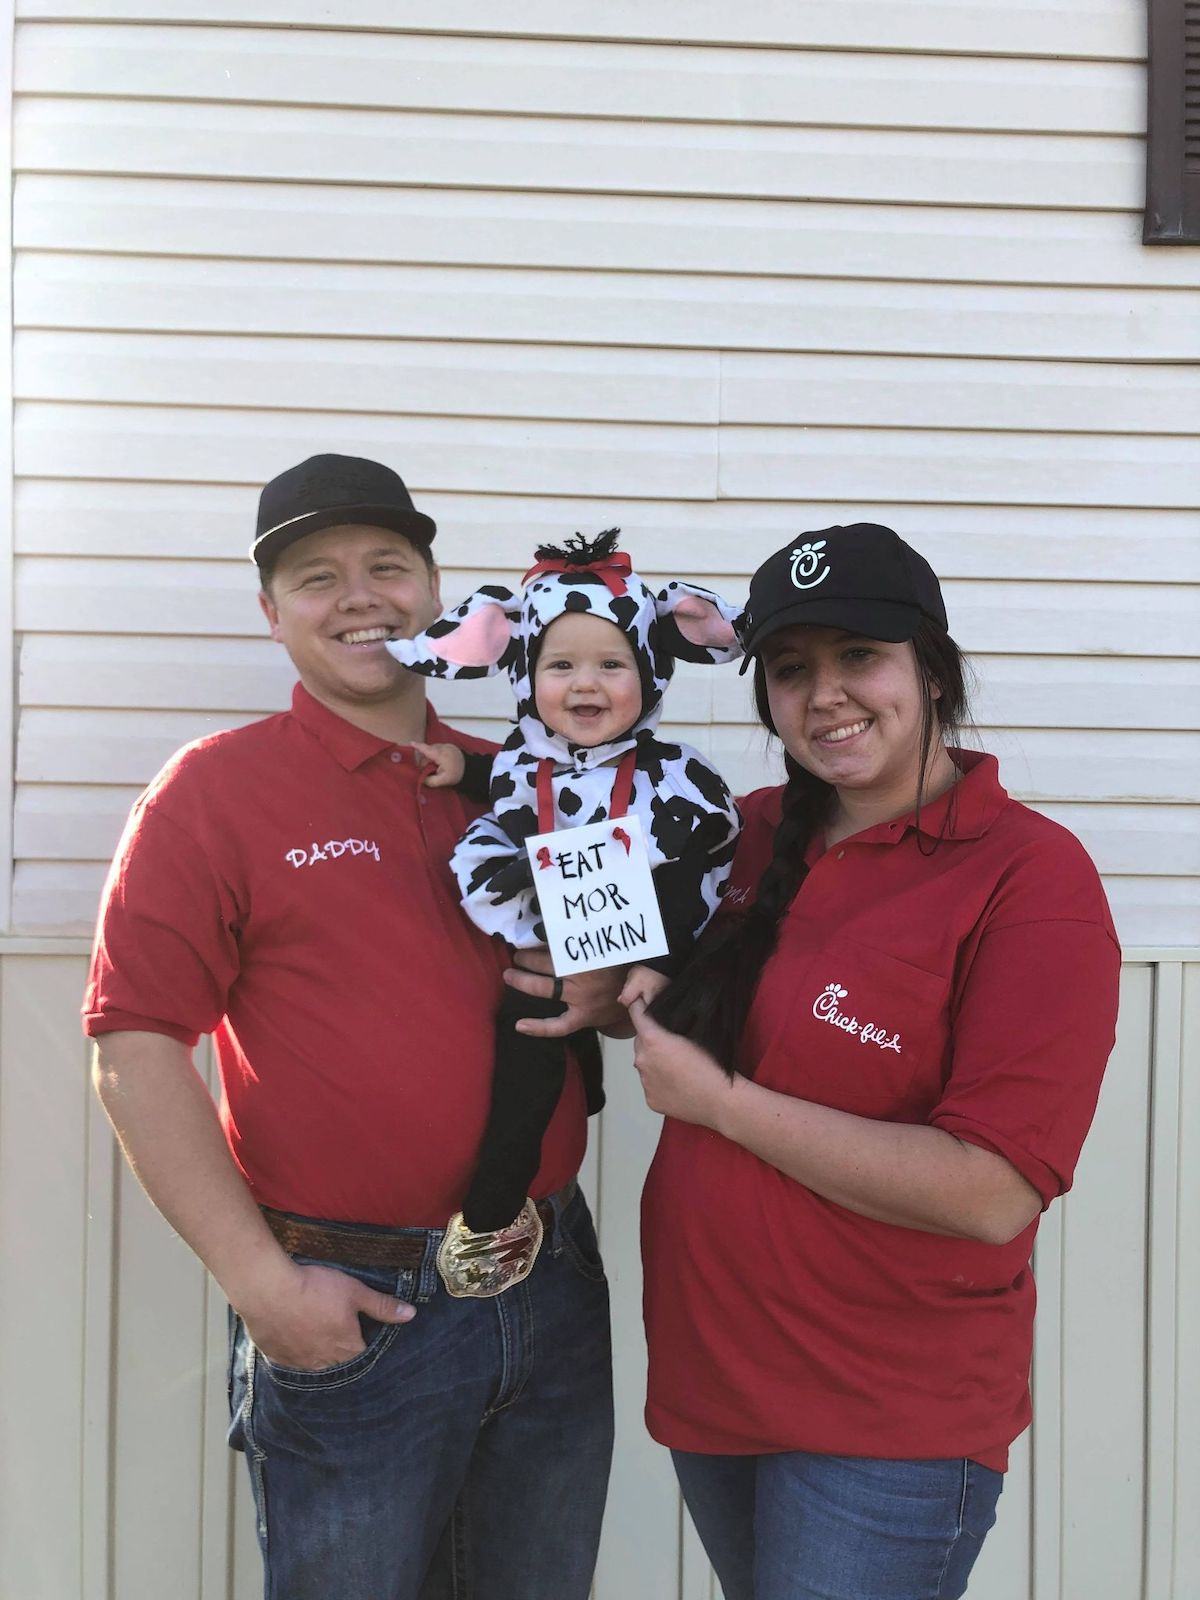 Man and woman wear Chick Fil A shirts and hold baby girl wearing cow costume.